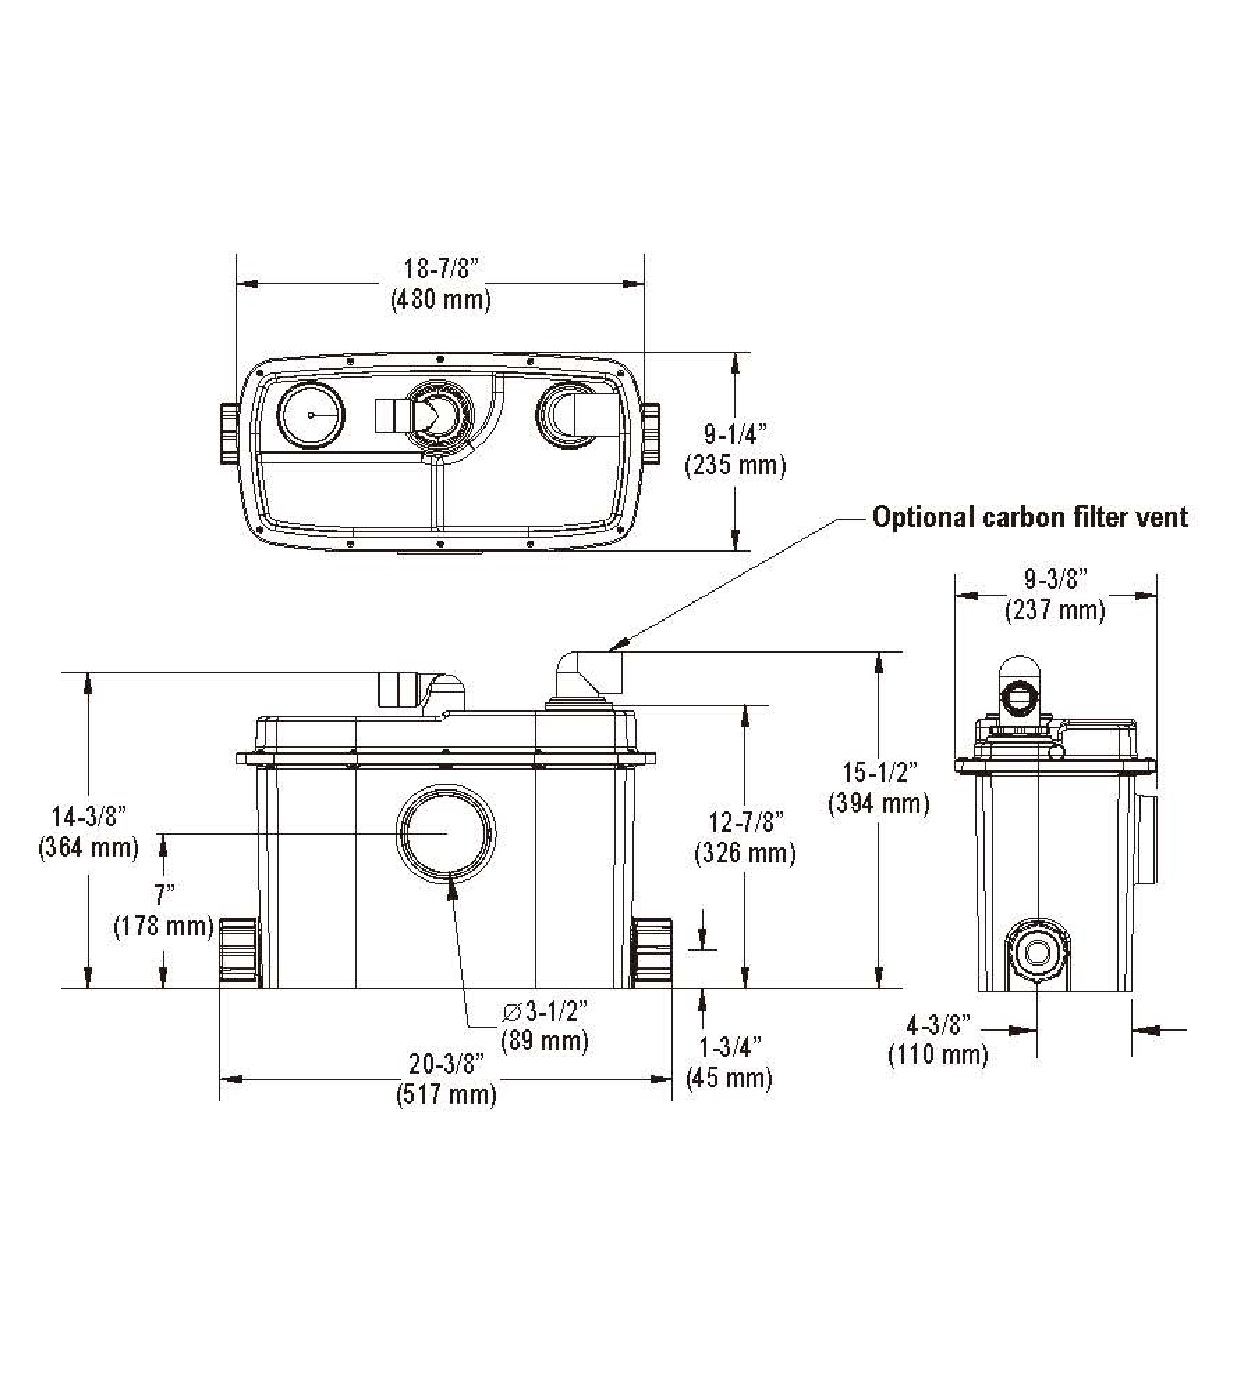 Grinder Pump Schematics Electrical Wiring Diagrams Little Giant Diagram Taiwan System Qwik Jon Ultima 202 Zoeller Icon